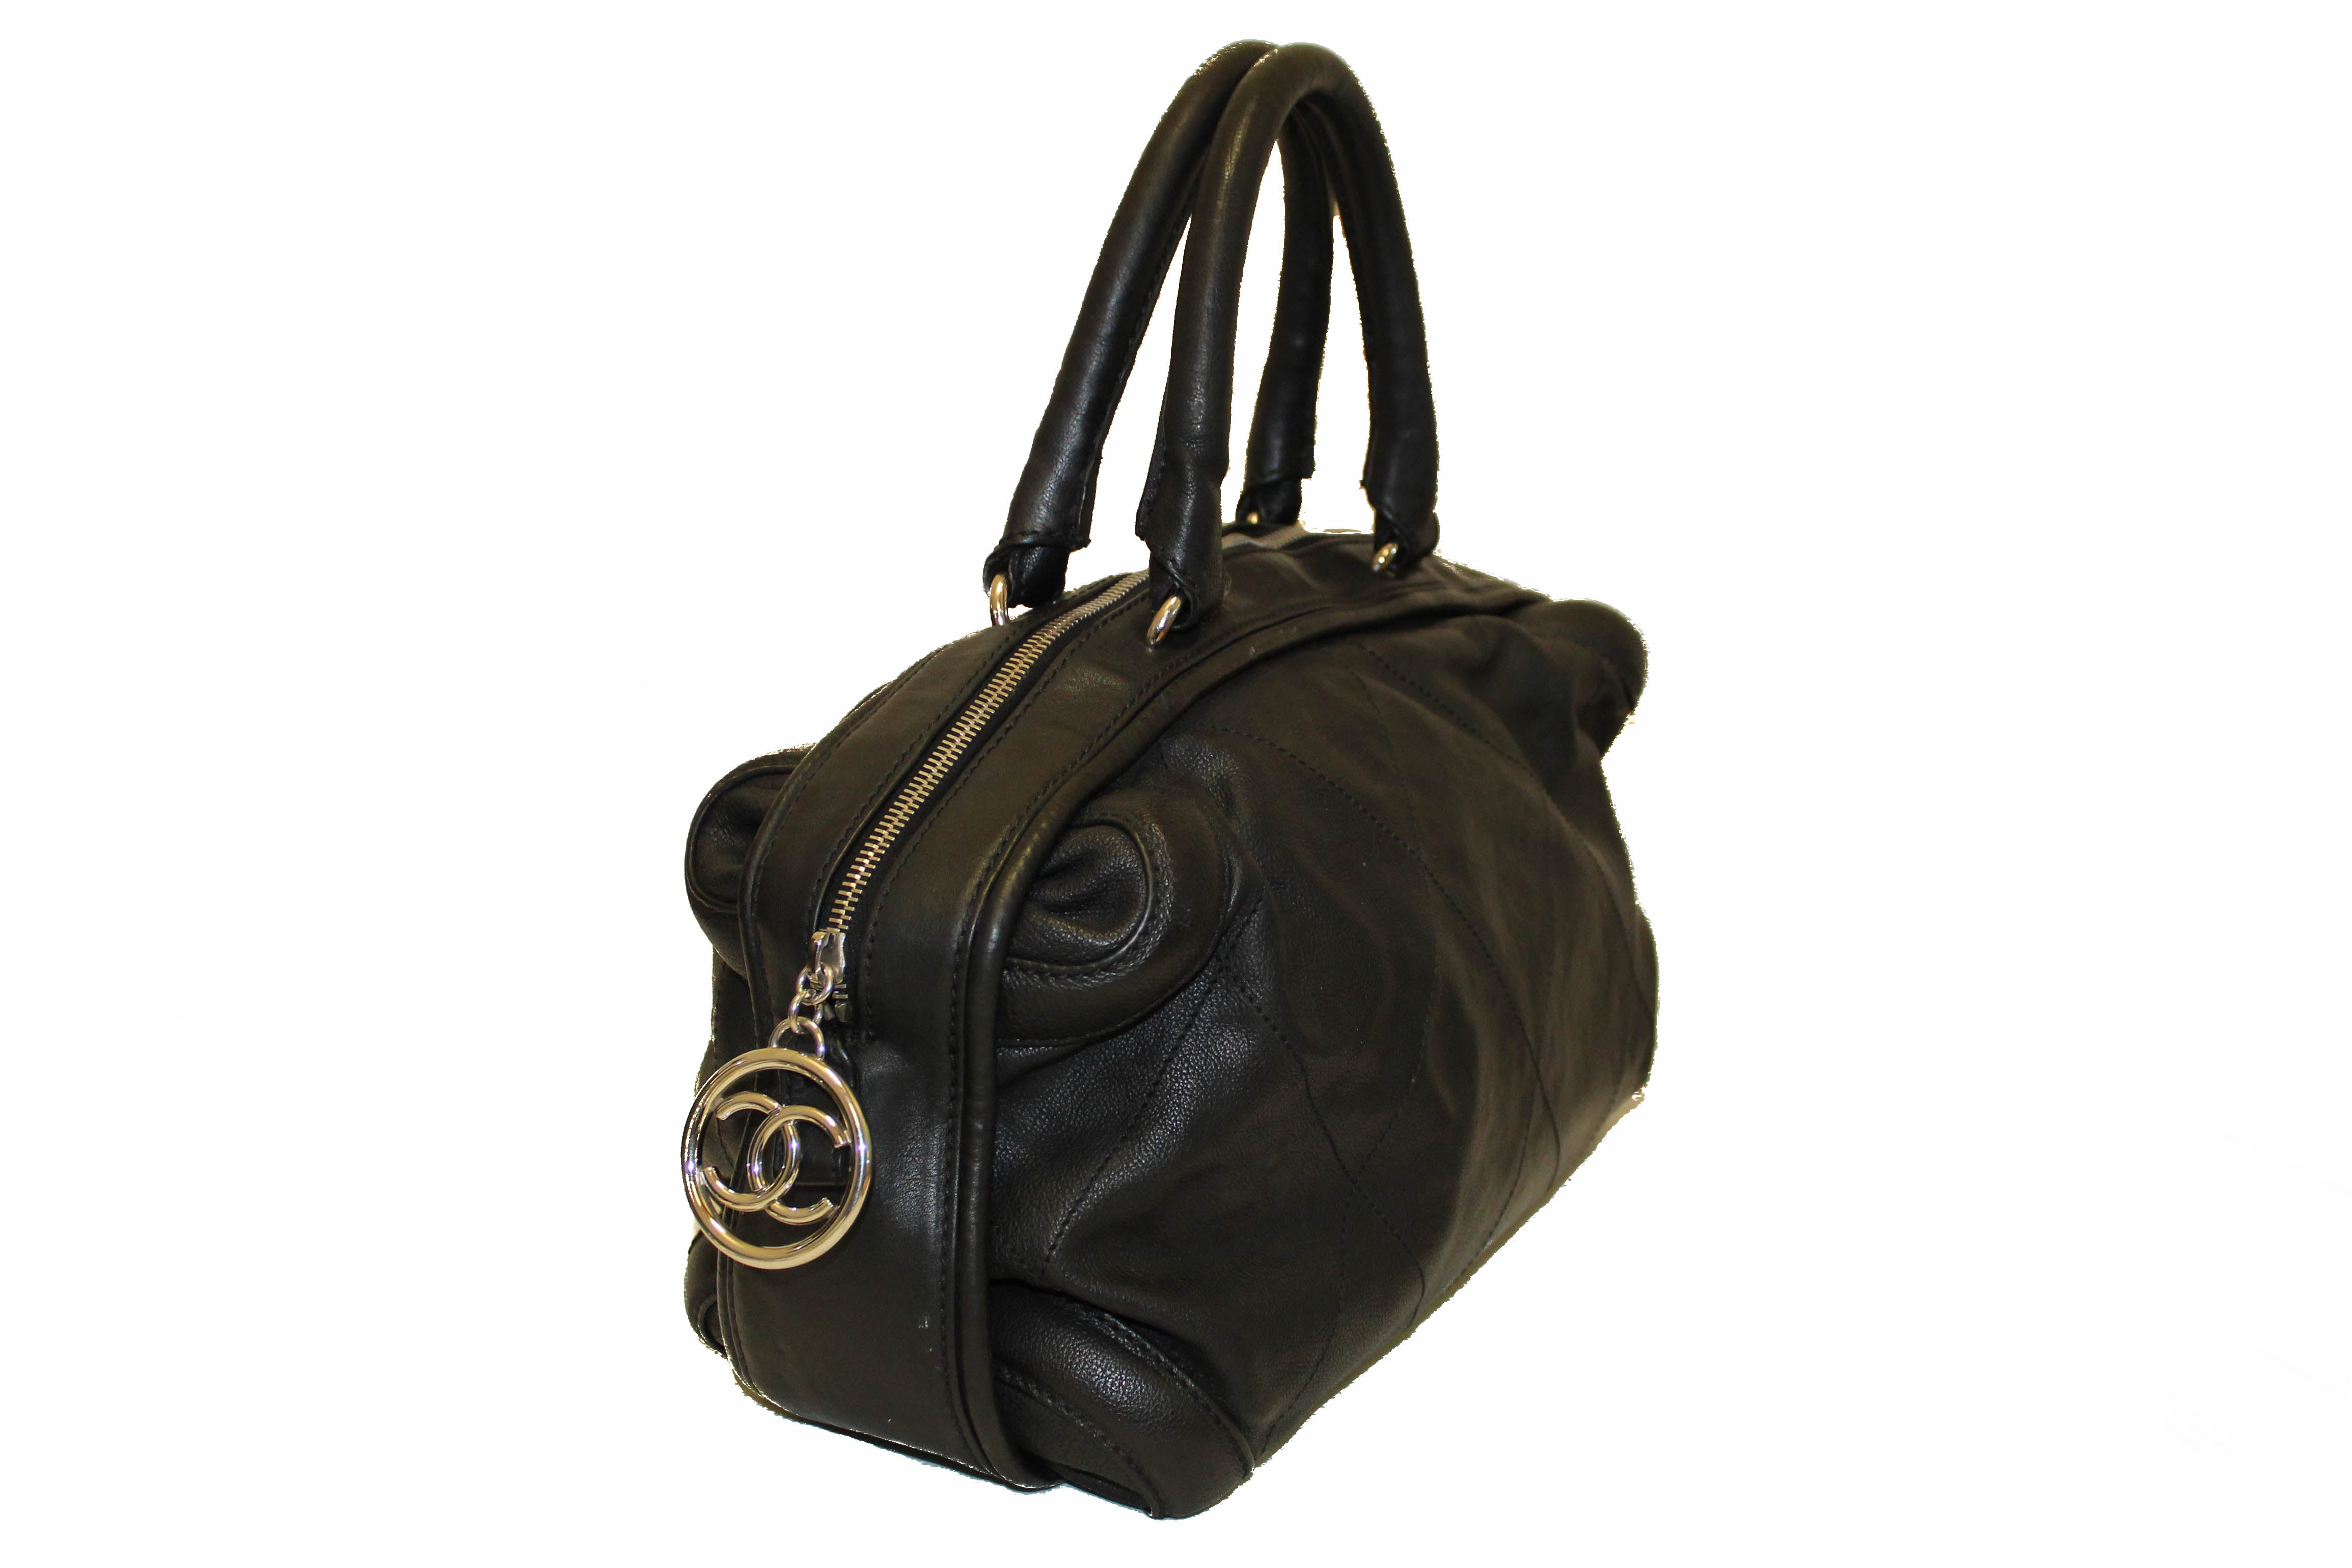 Authentic Chanel Black Calfskin Leather Stitched Bowling Handbag